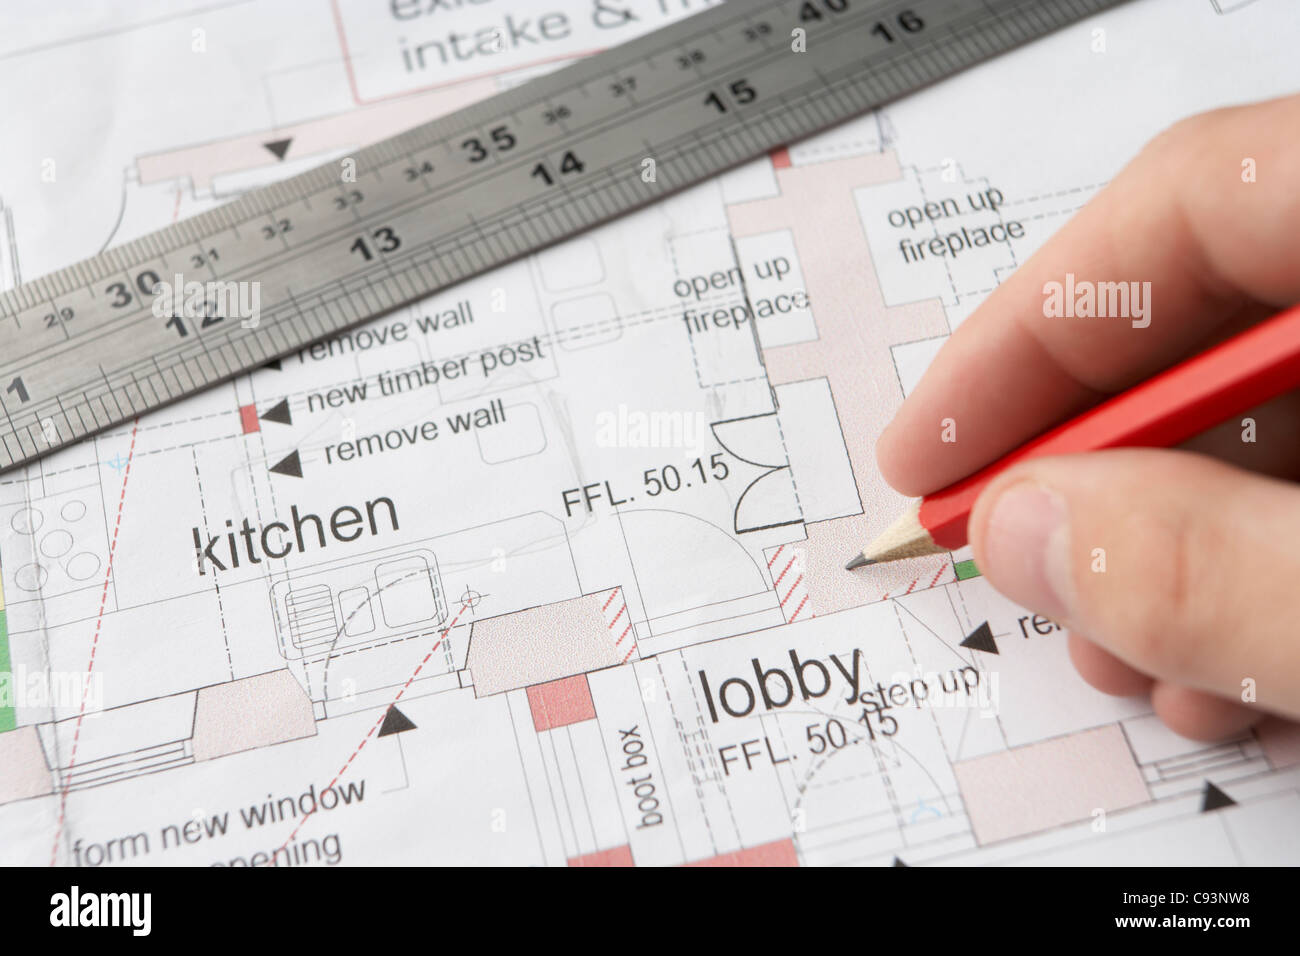 Man working on technical drawing - Stock Image